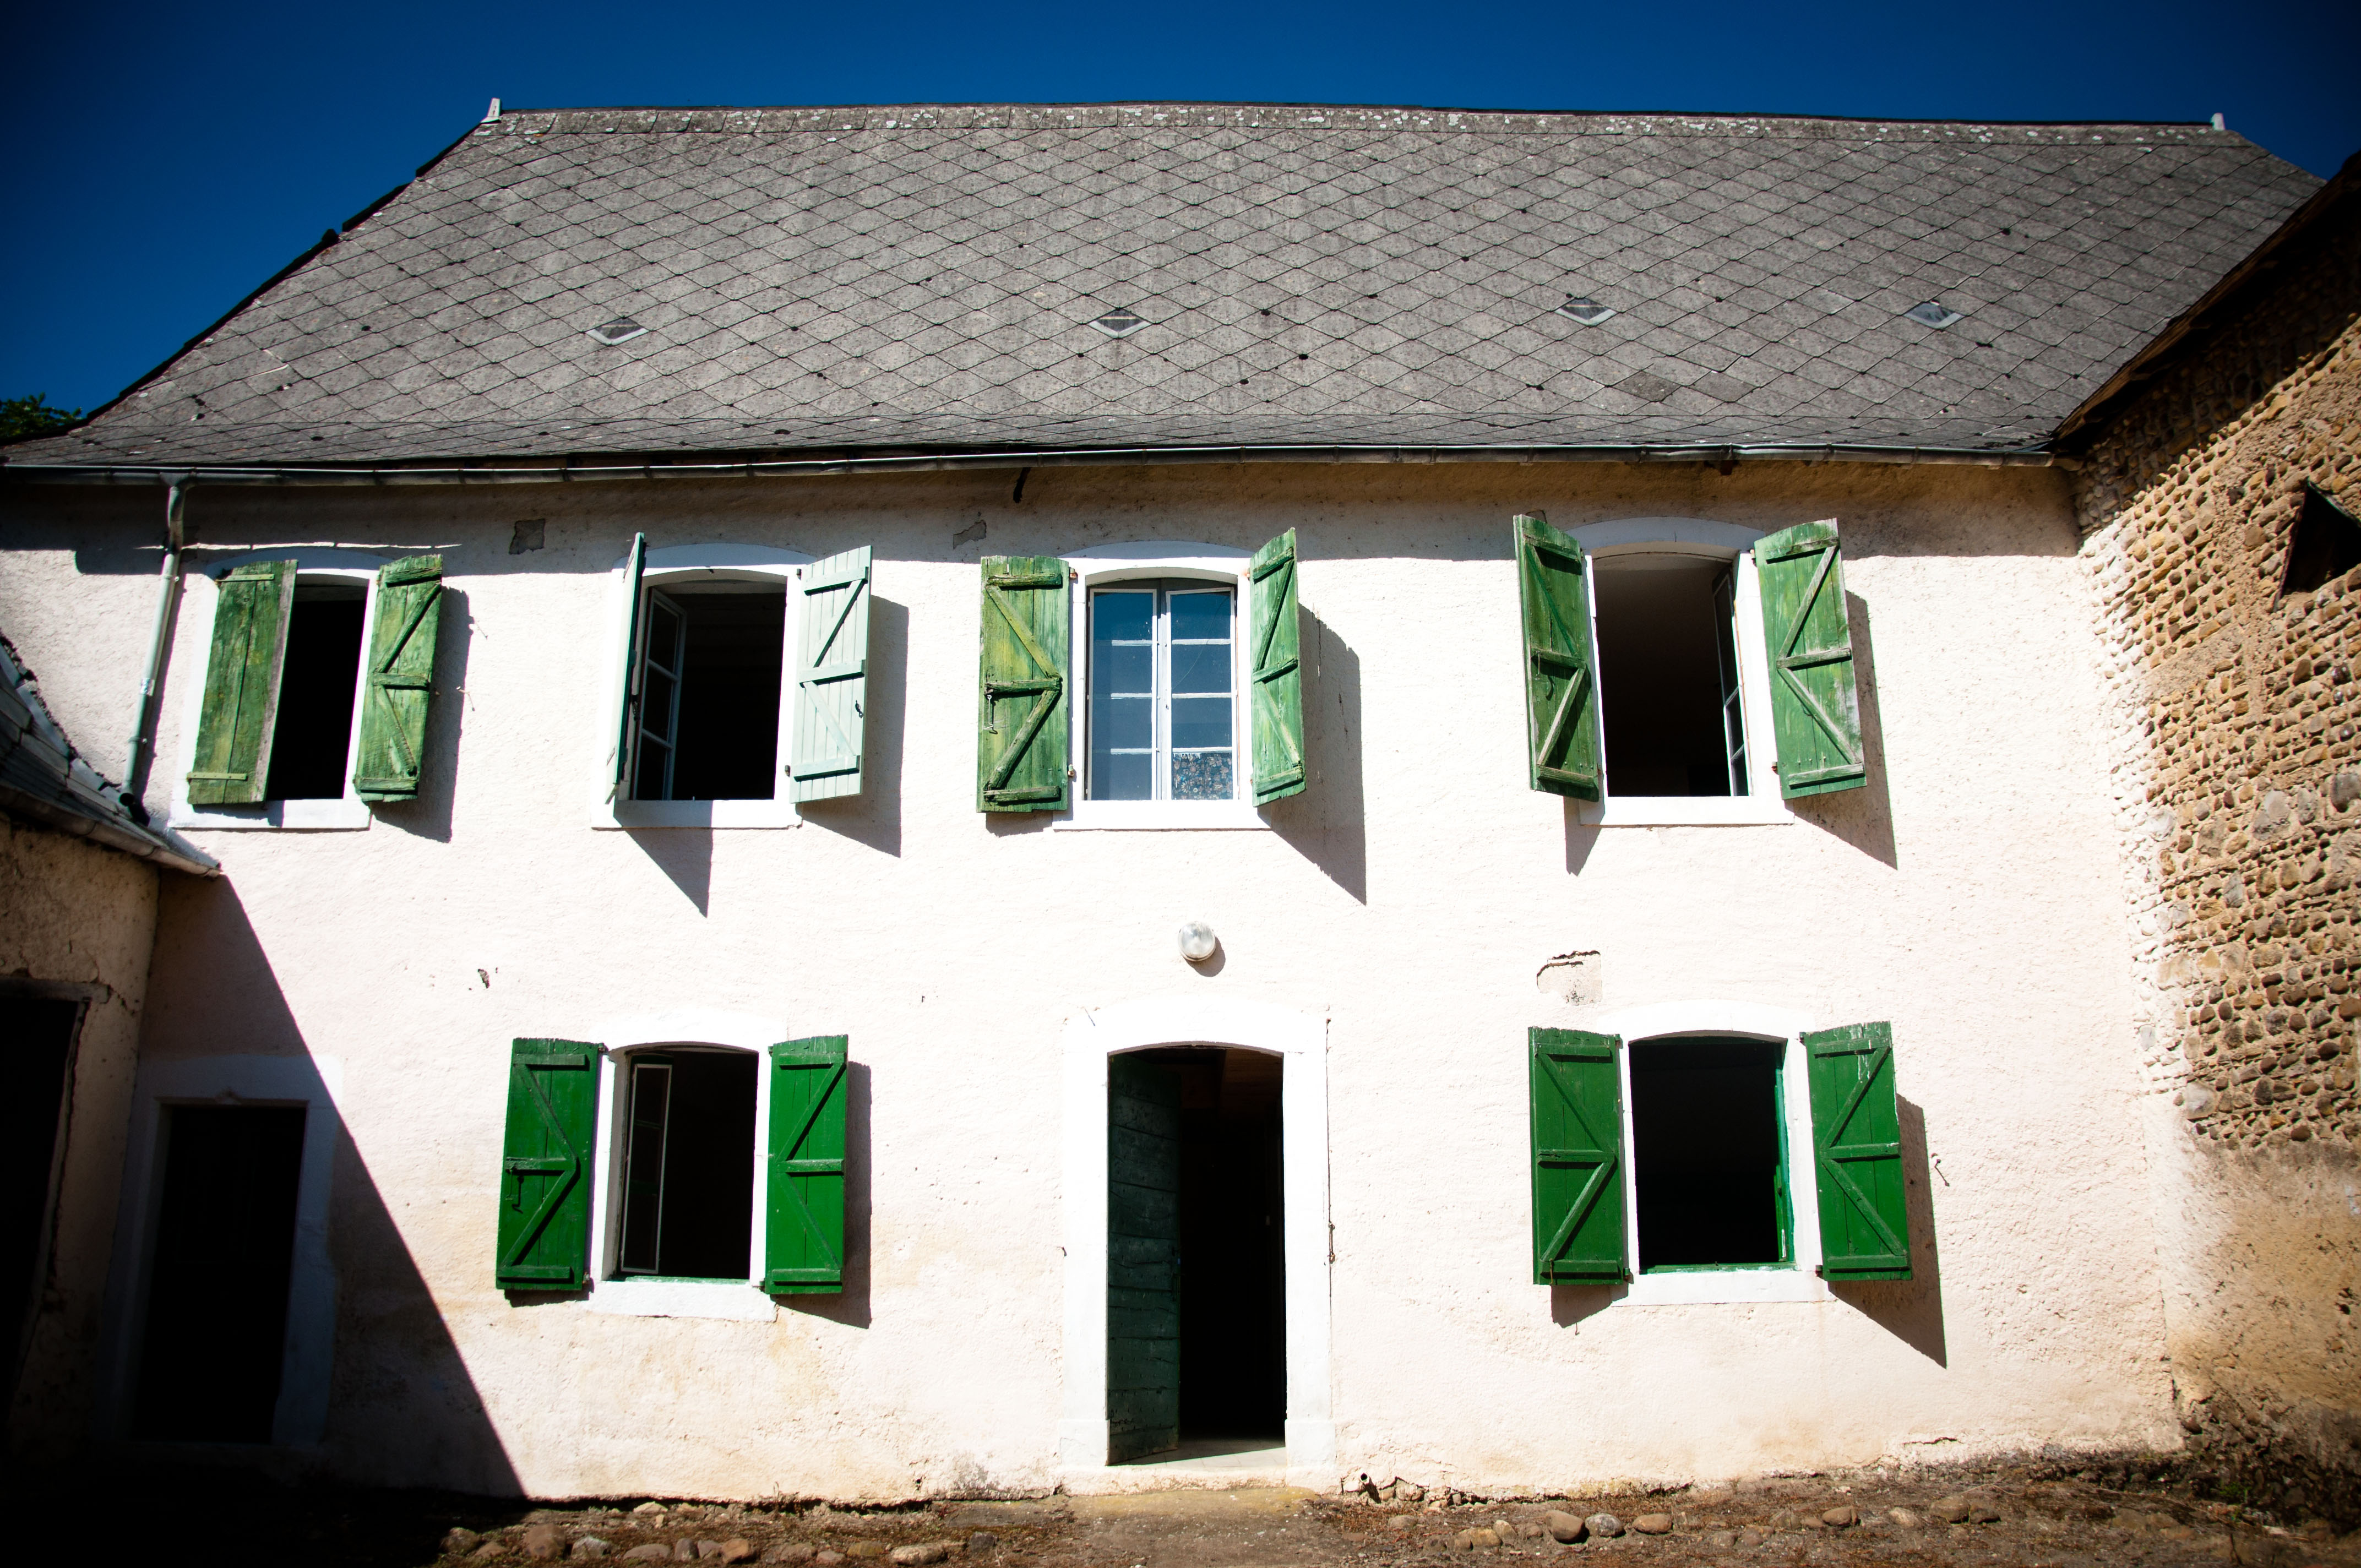 French house, Ancient, Summer, Roof, Rural, HQ Photo